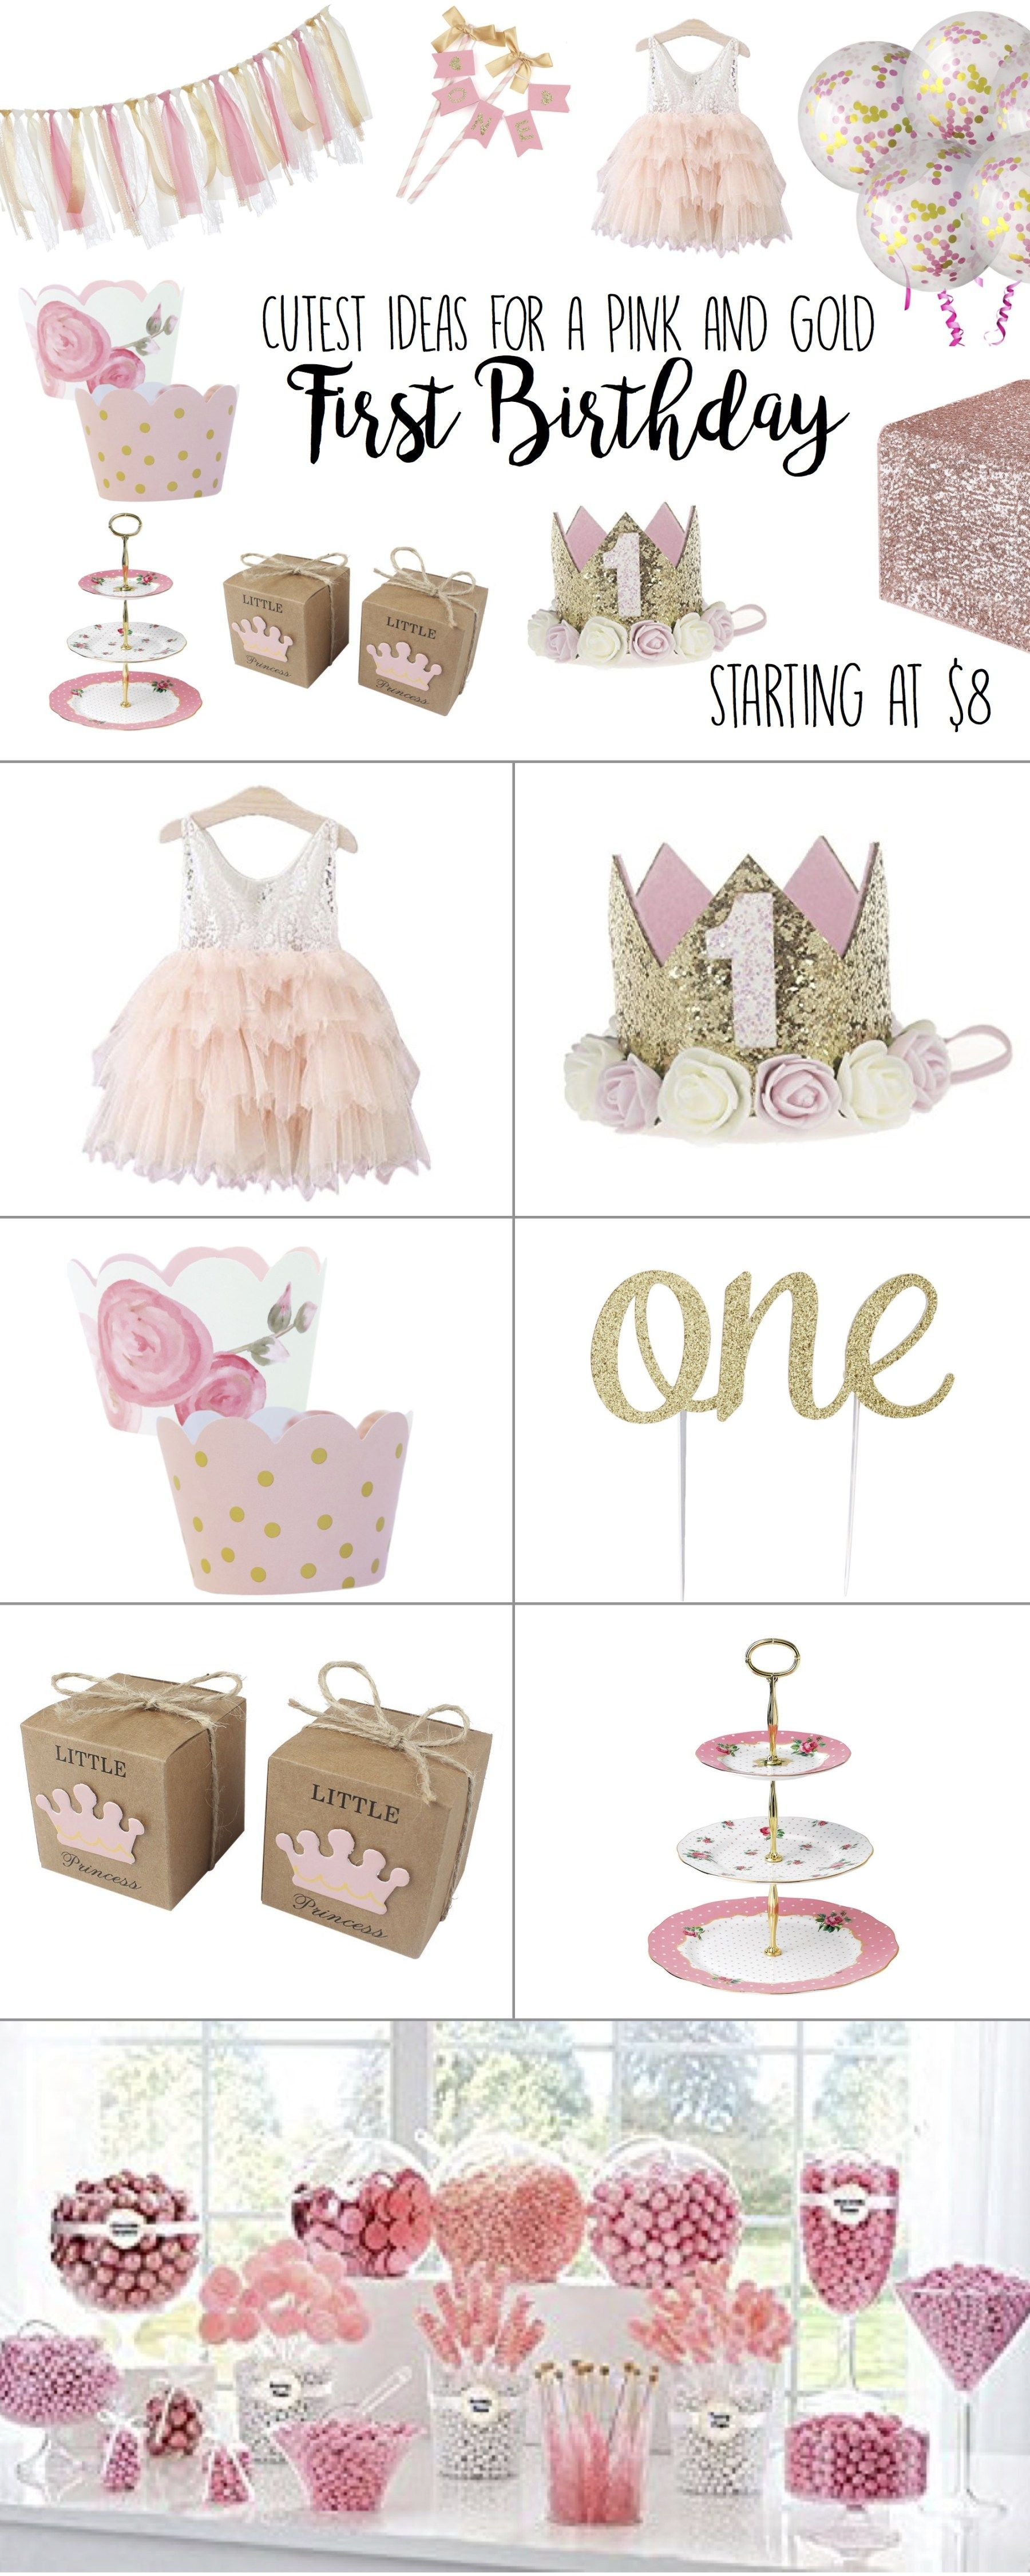 First Birthday Girl, Party Ideas, Themes, Pink and Gold, Outfit ...